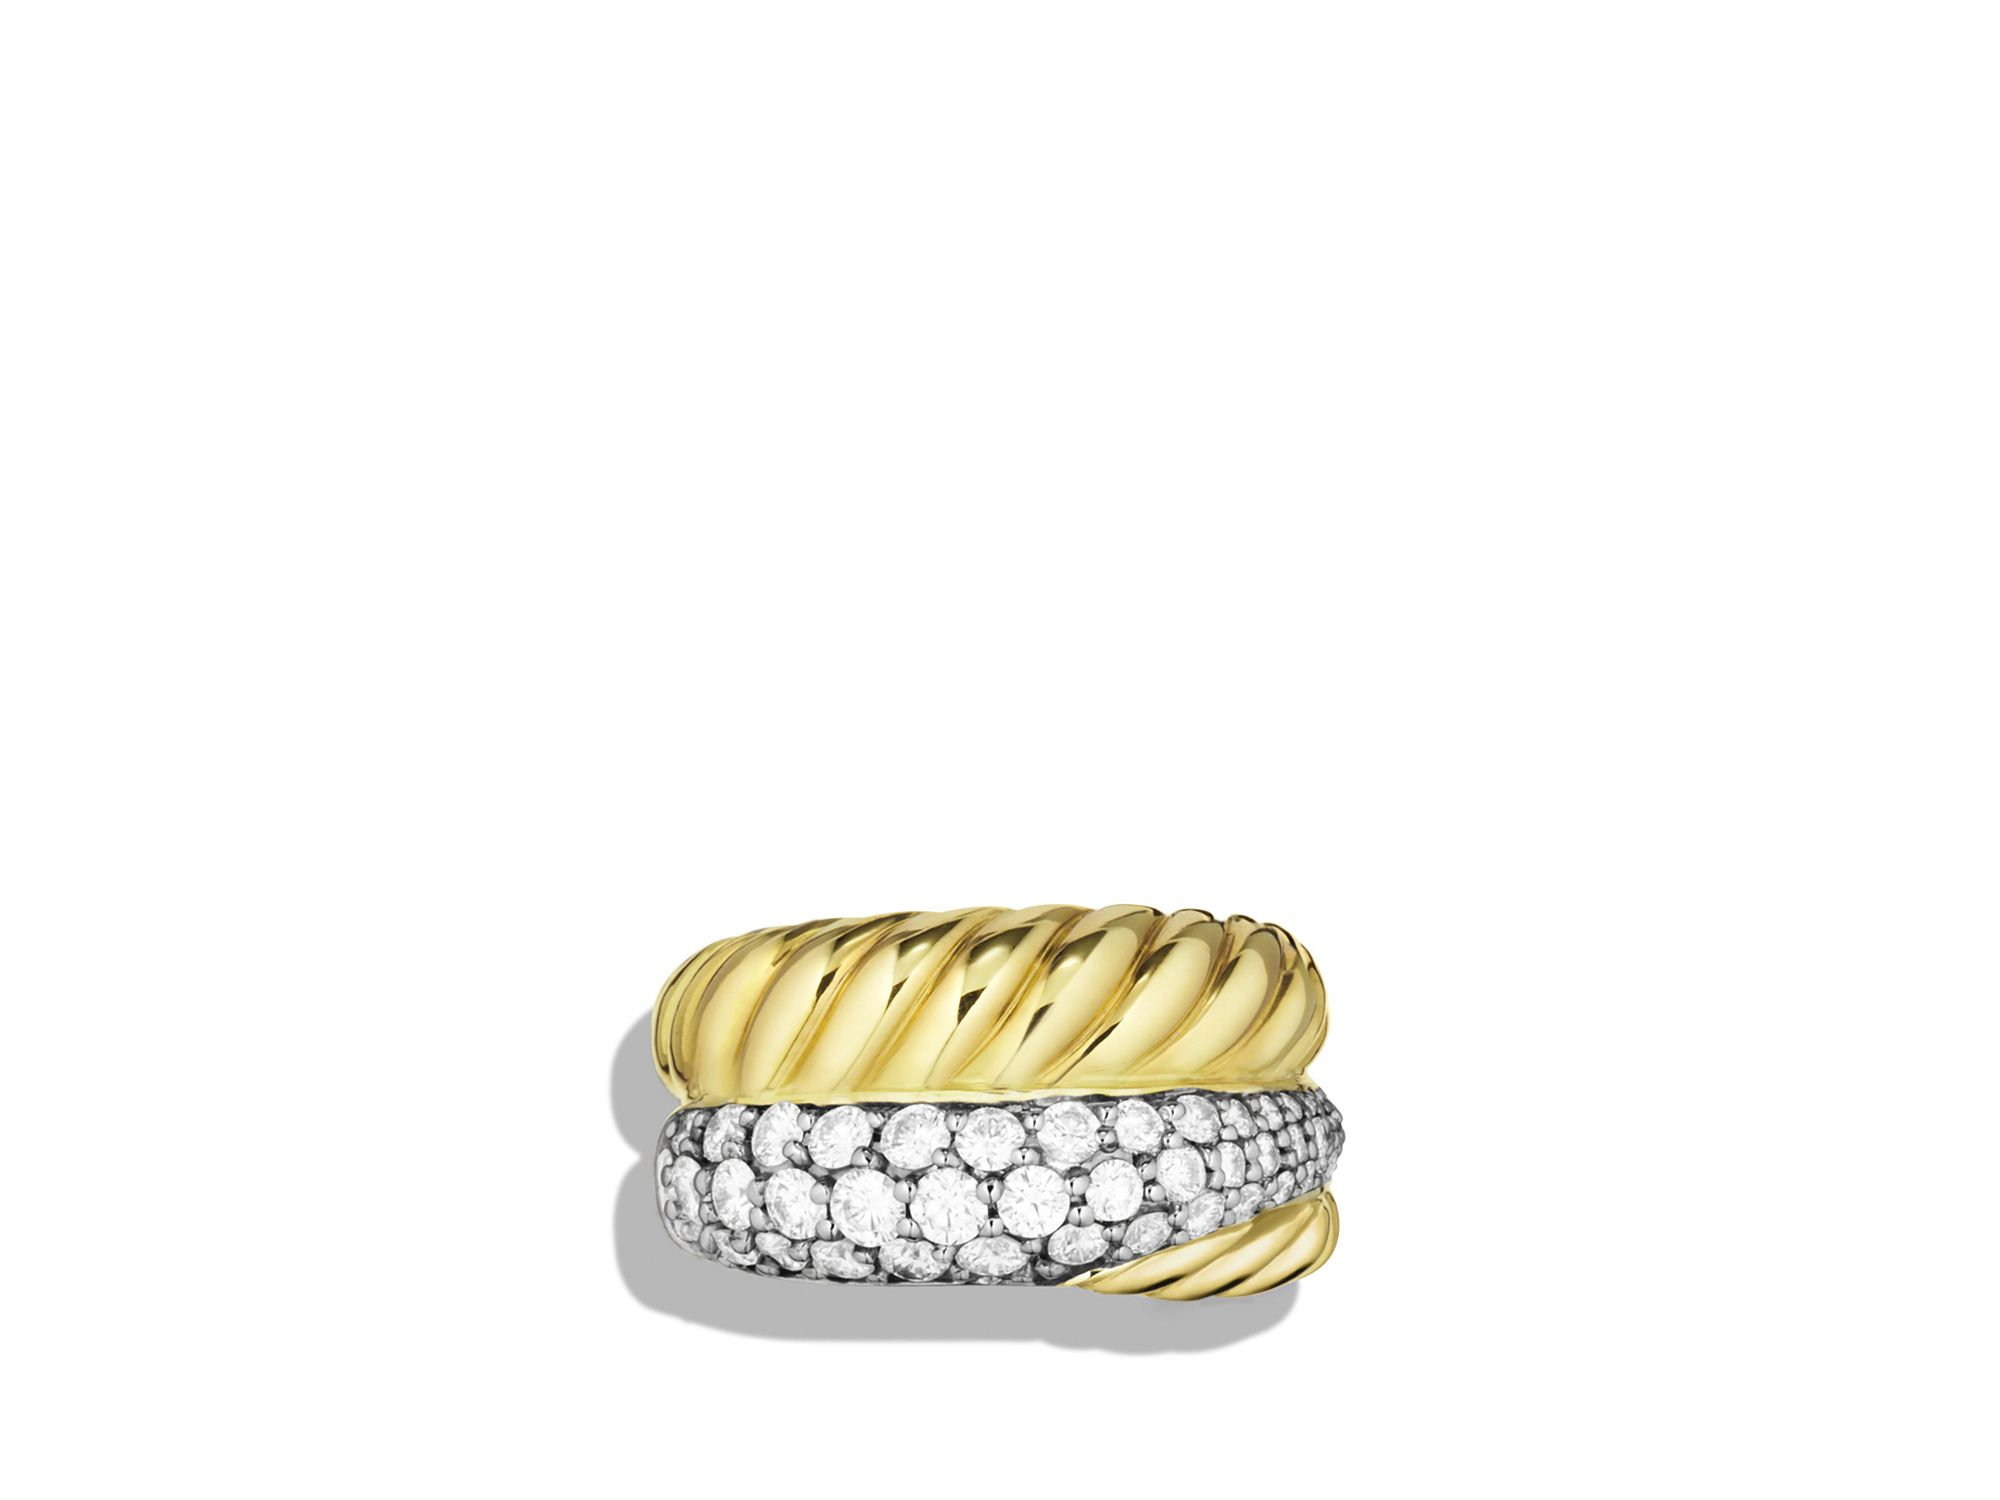 David Yurman Crossover Ring Nordstrom